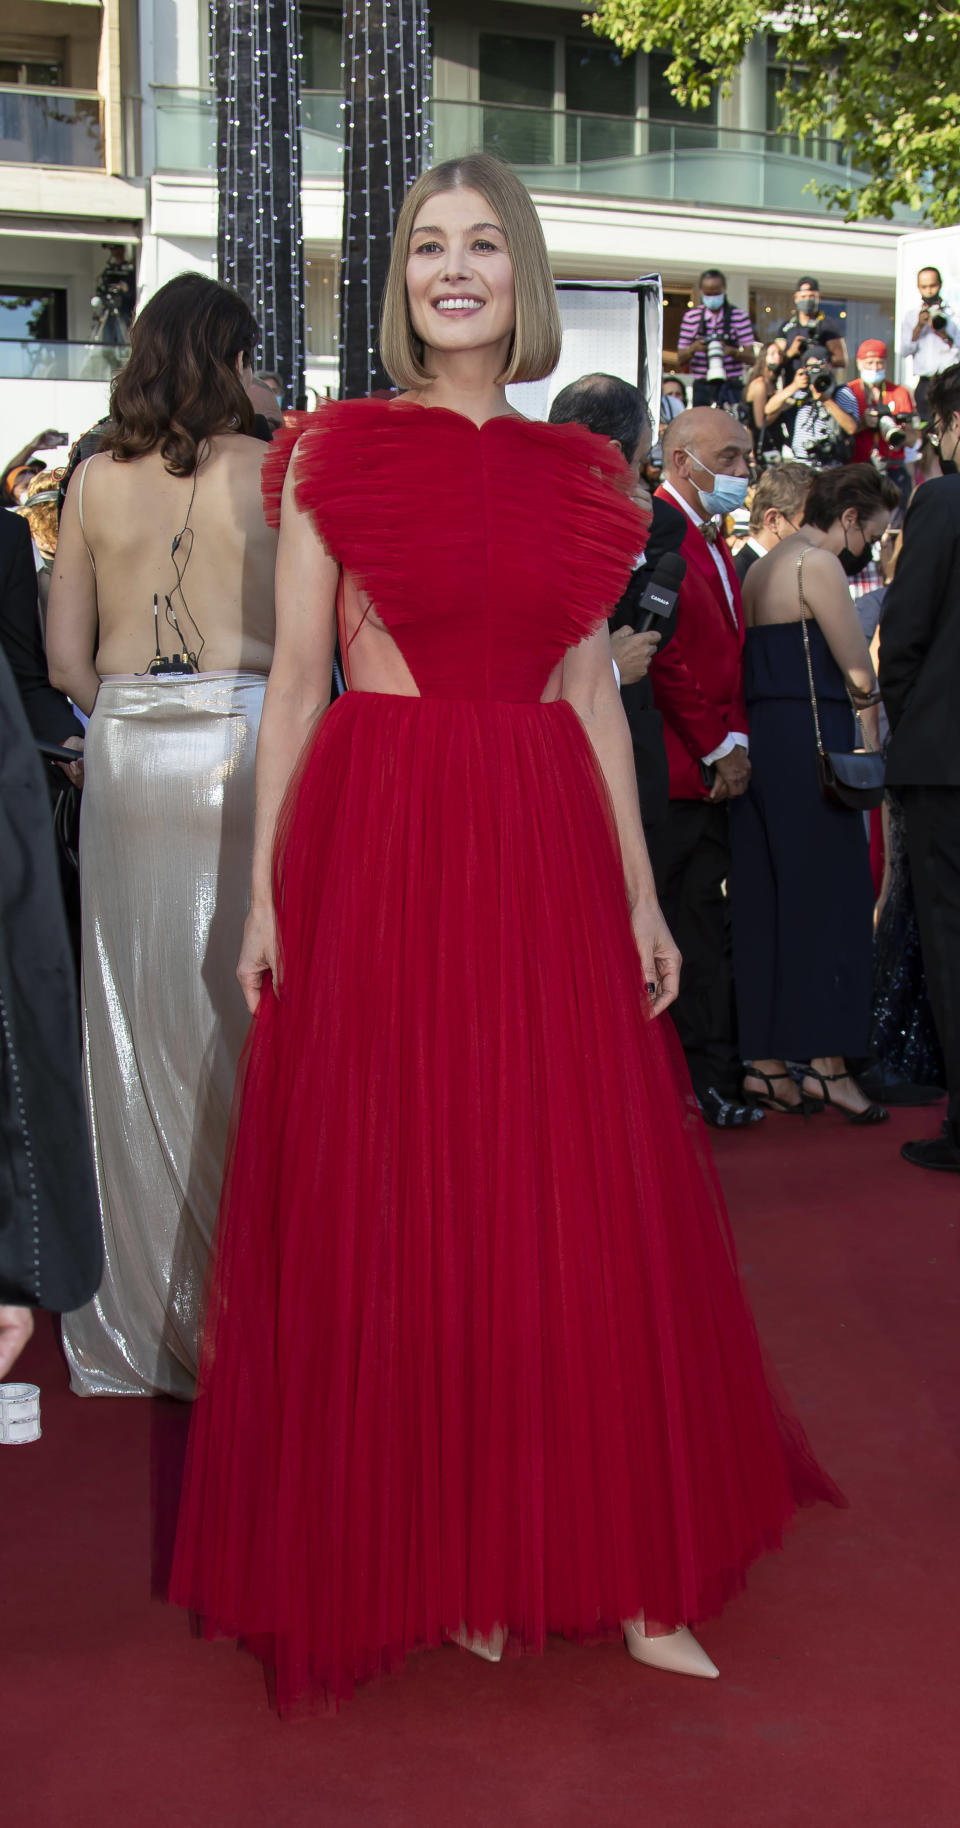 """Rosamund Pike attends the final screening of """"OSS 117: From Africa With Love"""" and closing ceremony during the 74th annual Cannes Film Festival on July 17, 2021 in Cannes, France. - Credit: KCS Presse / MEGA"""